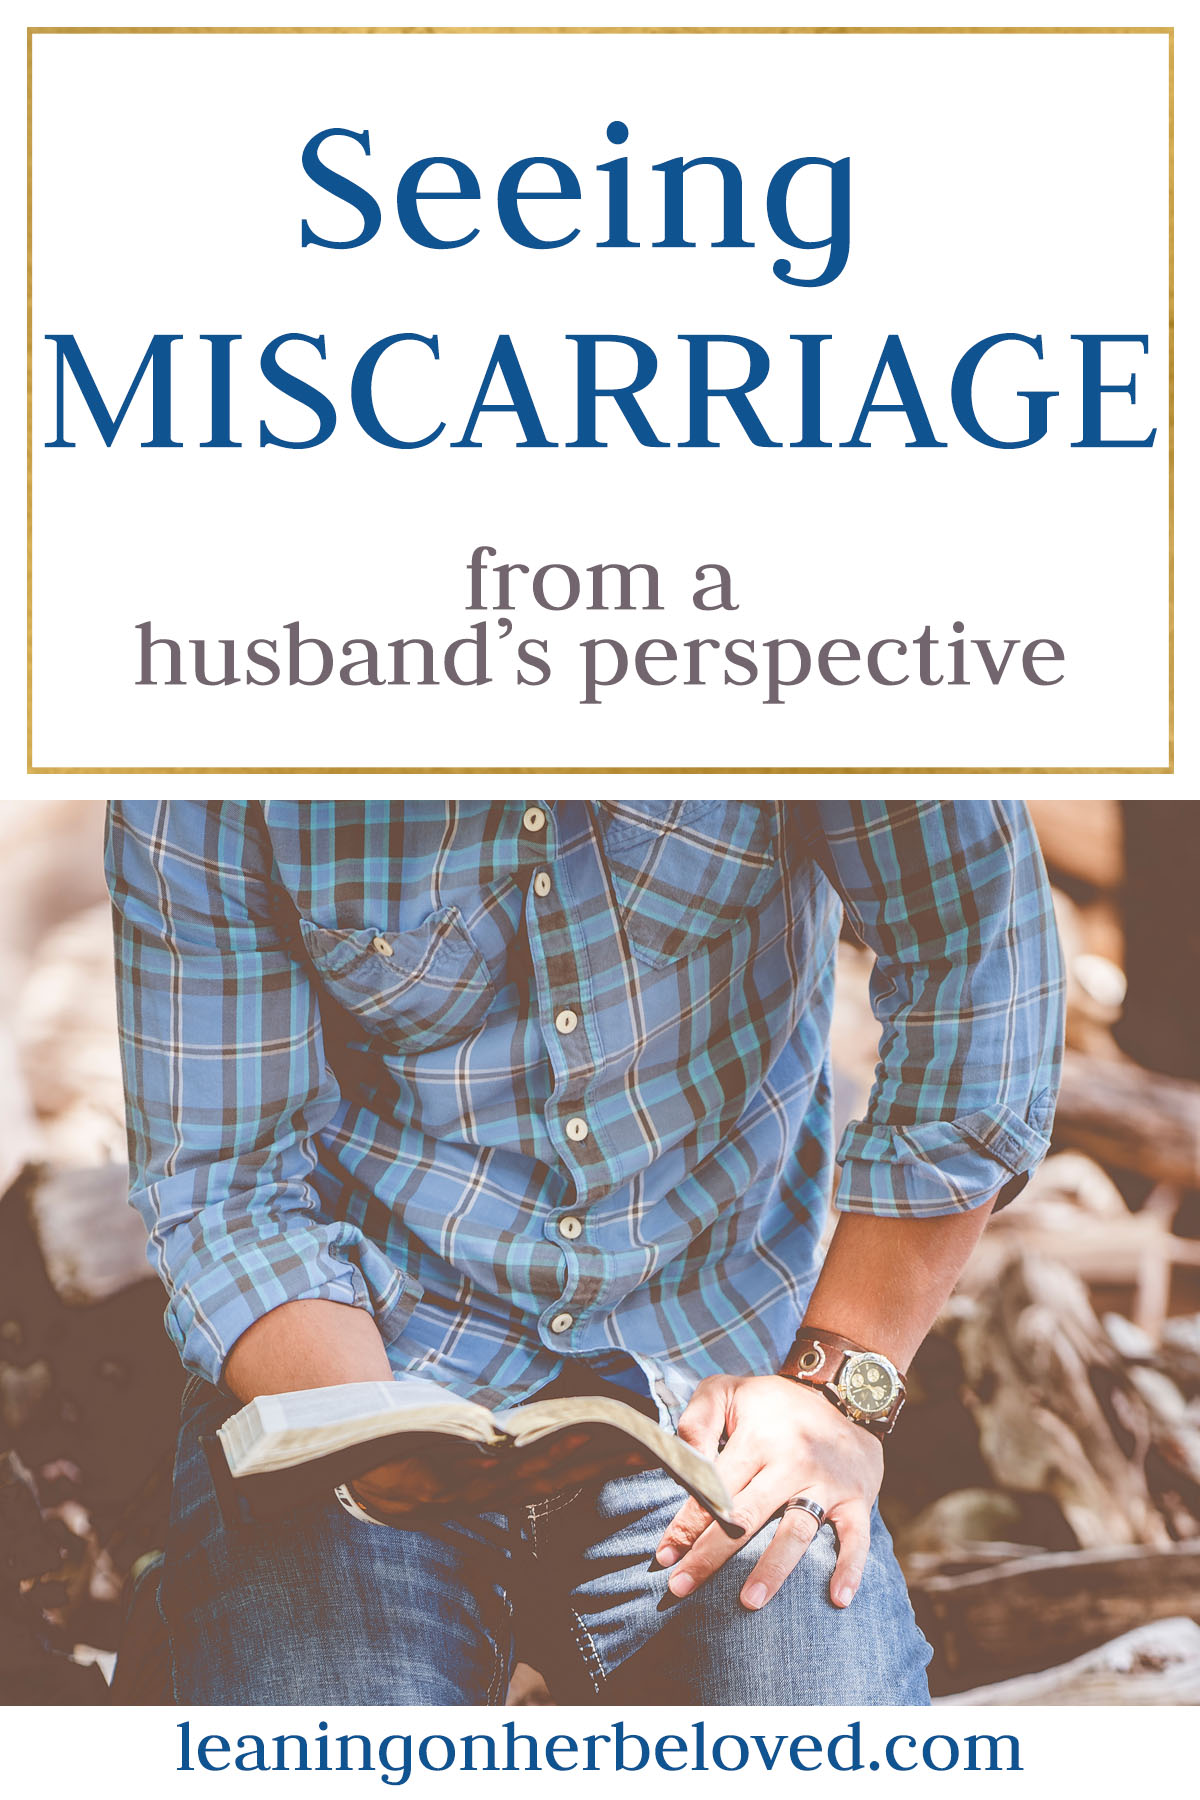 Husbands and Wives grieve Miscarriage differently...hear from a husband on how he processed his grief after his wife's miscarriage | #miscarriage | #grief